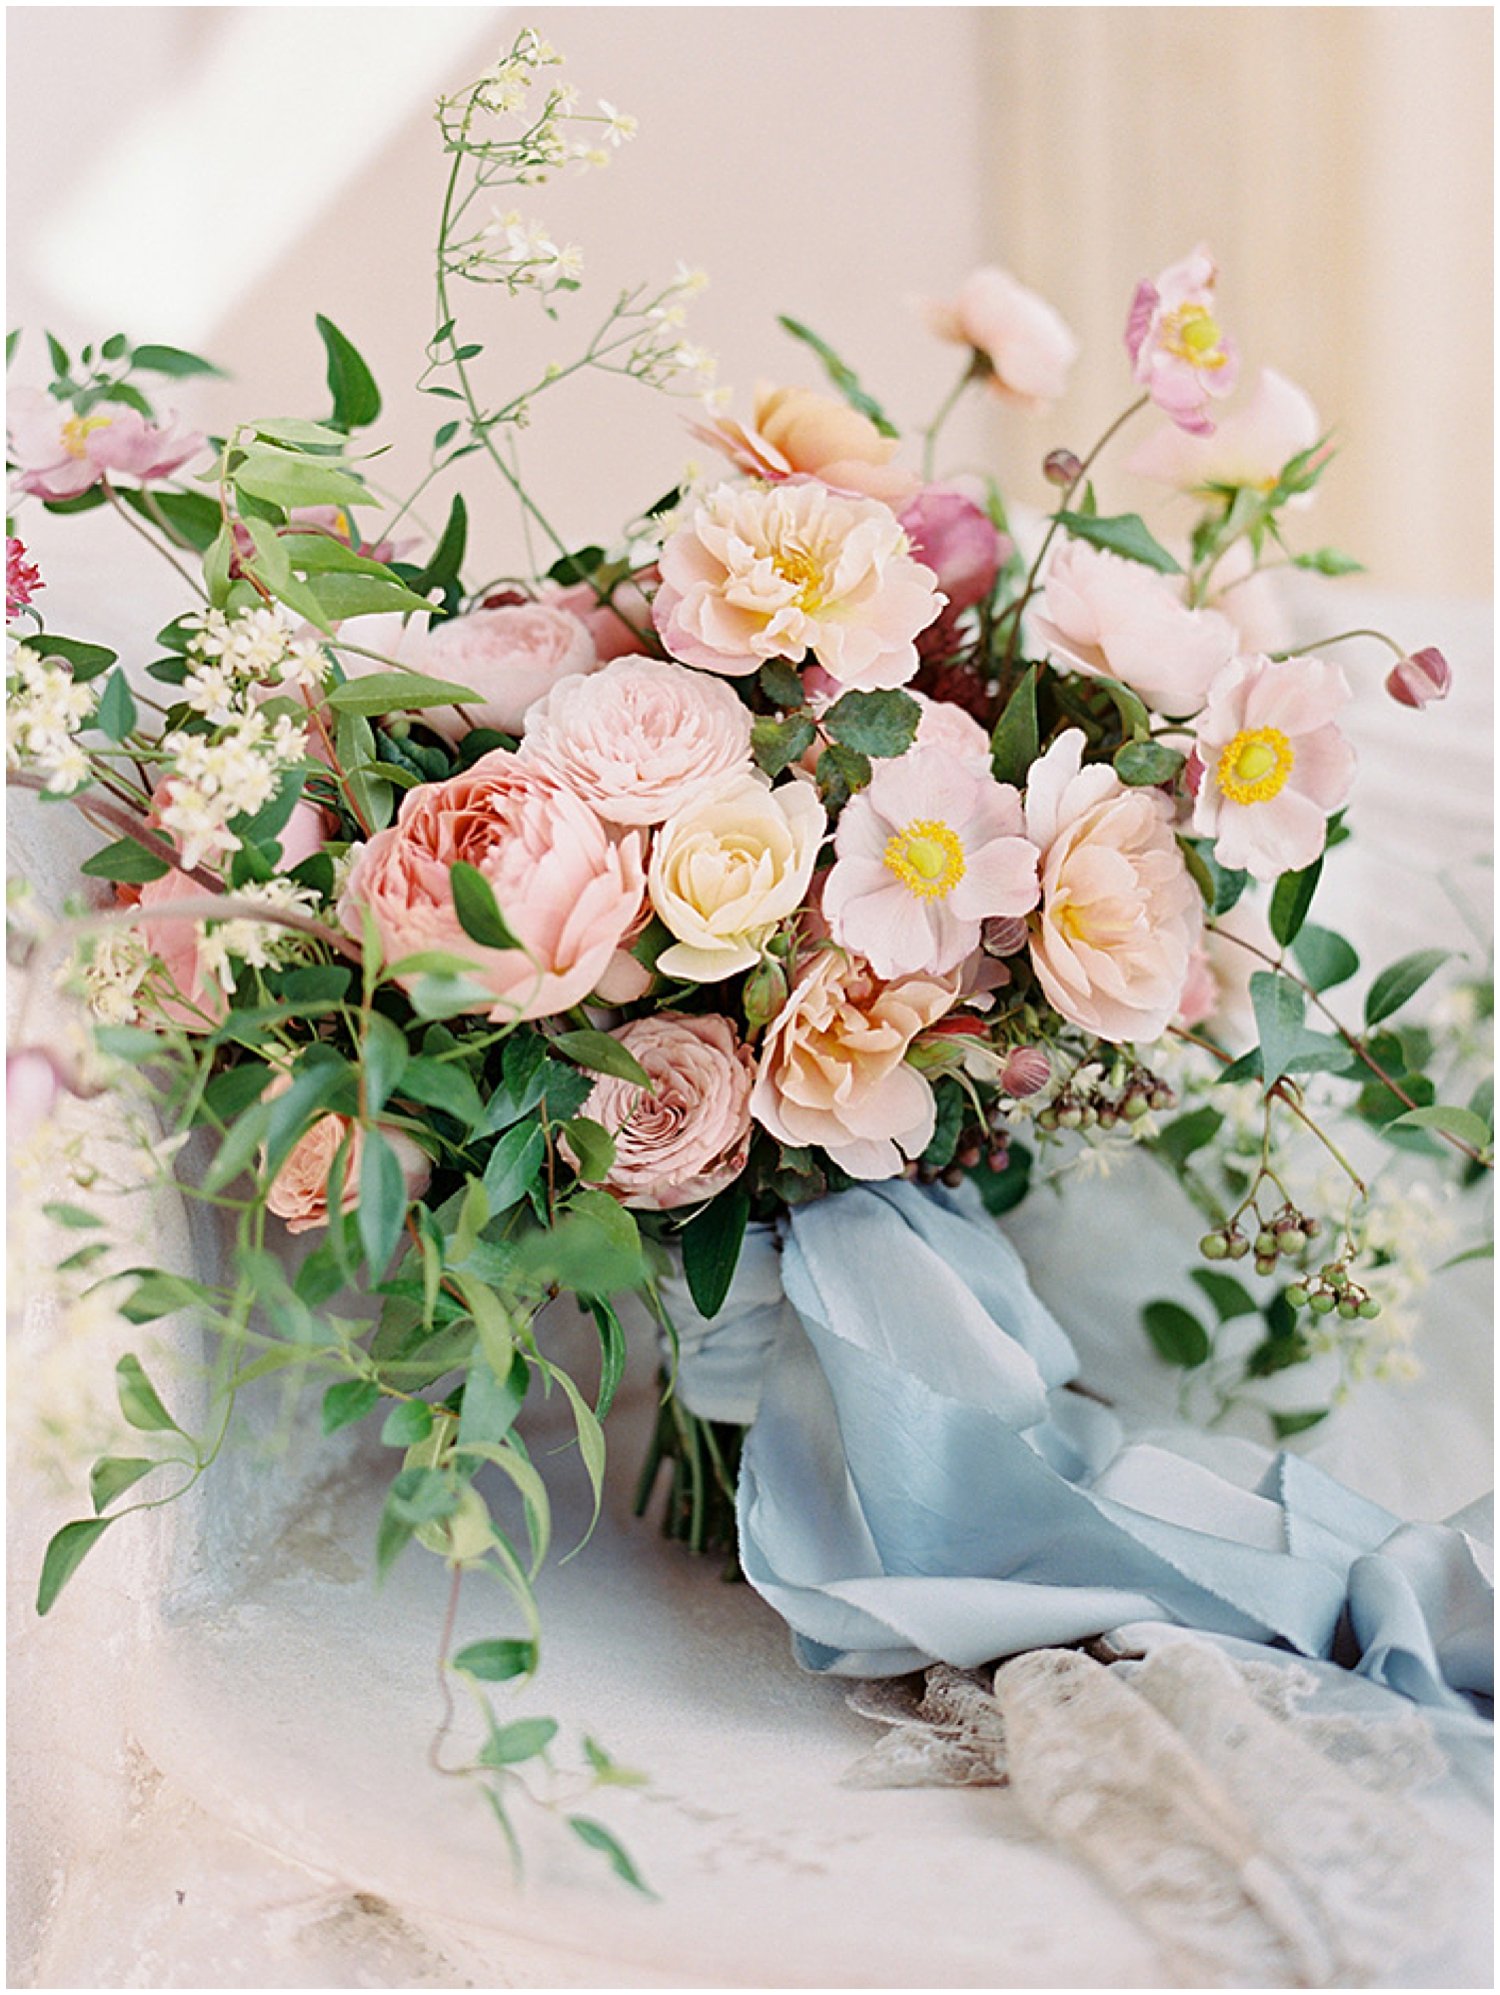 Gorgeous organic pink and blue wedding bouquet by  Sarah Winward as seen on  Once Wed  | Photo by  Ryan Ray